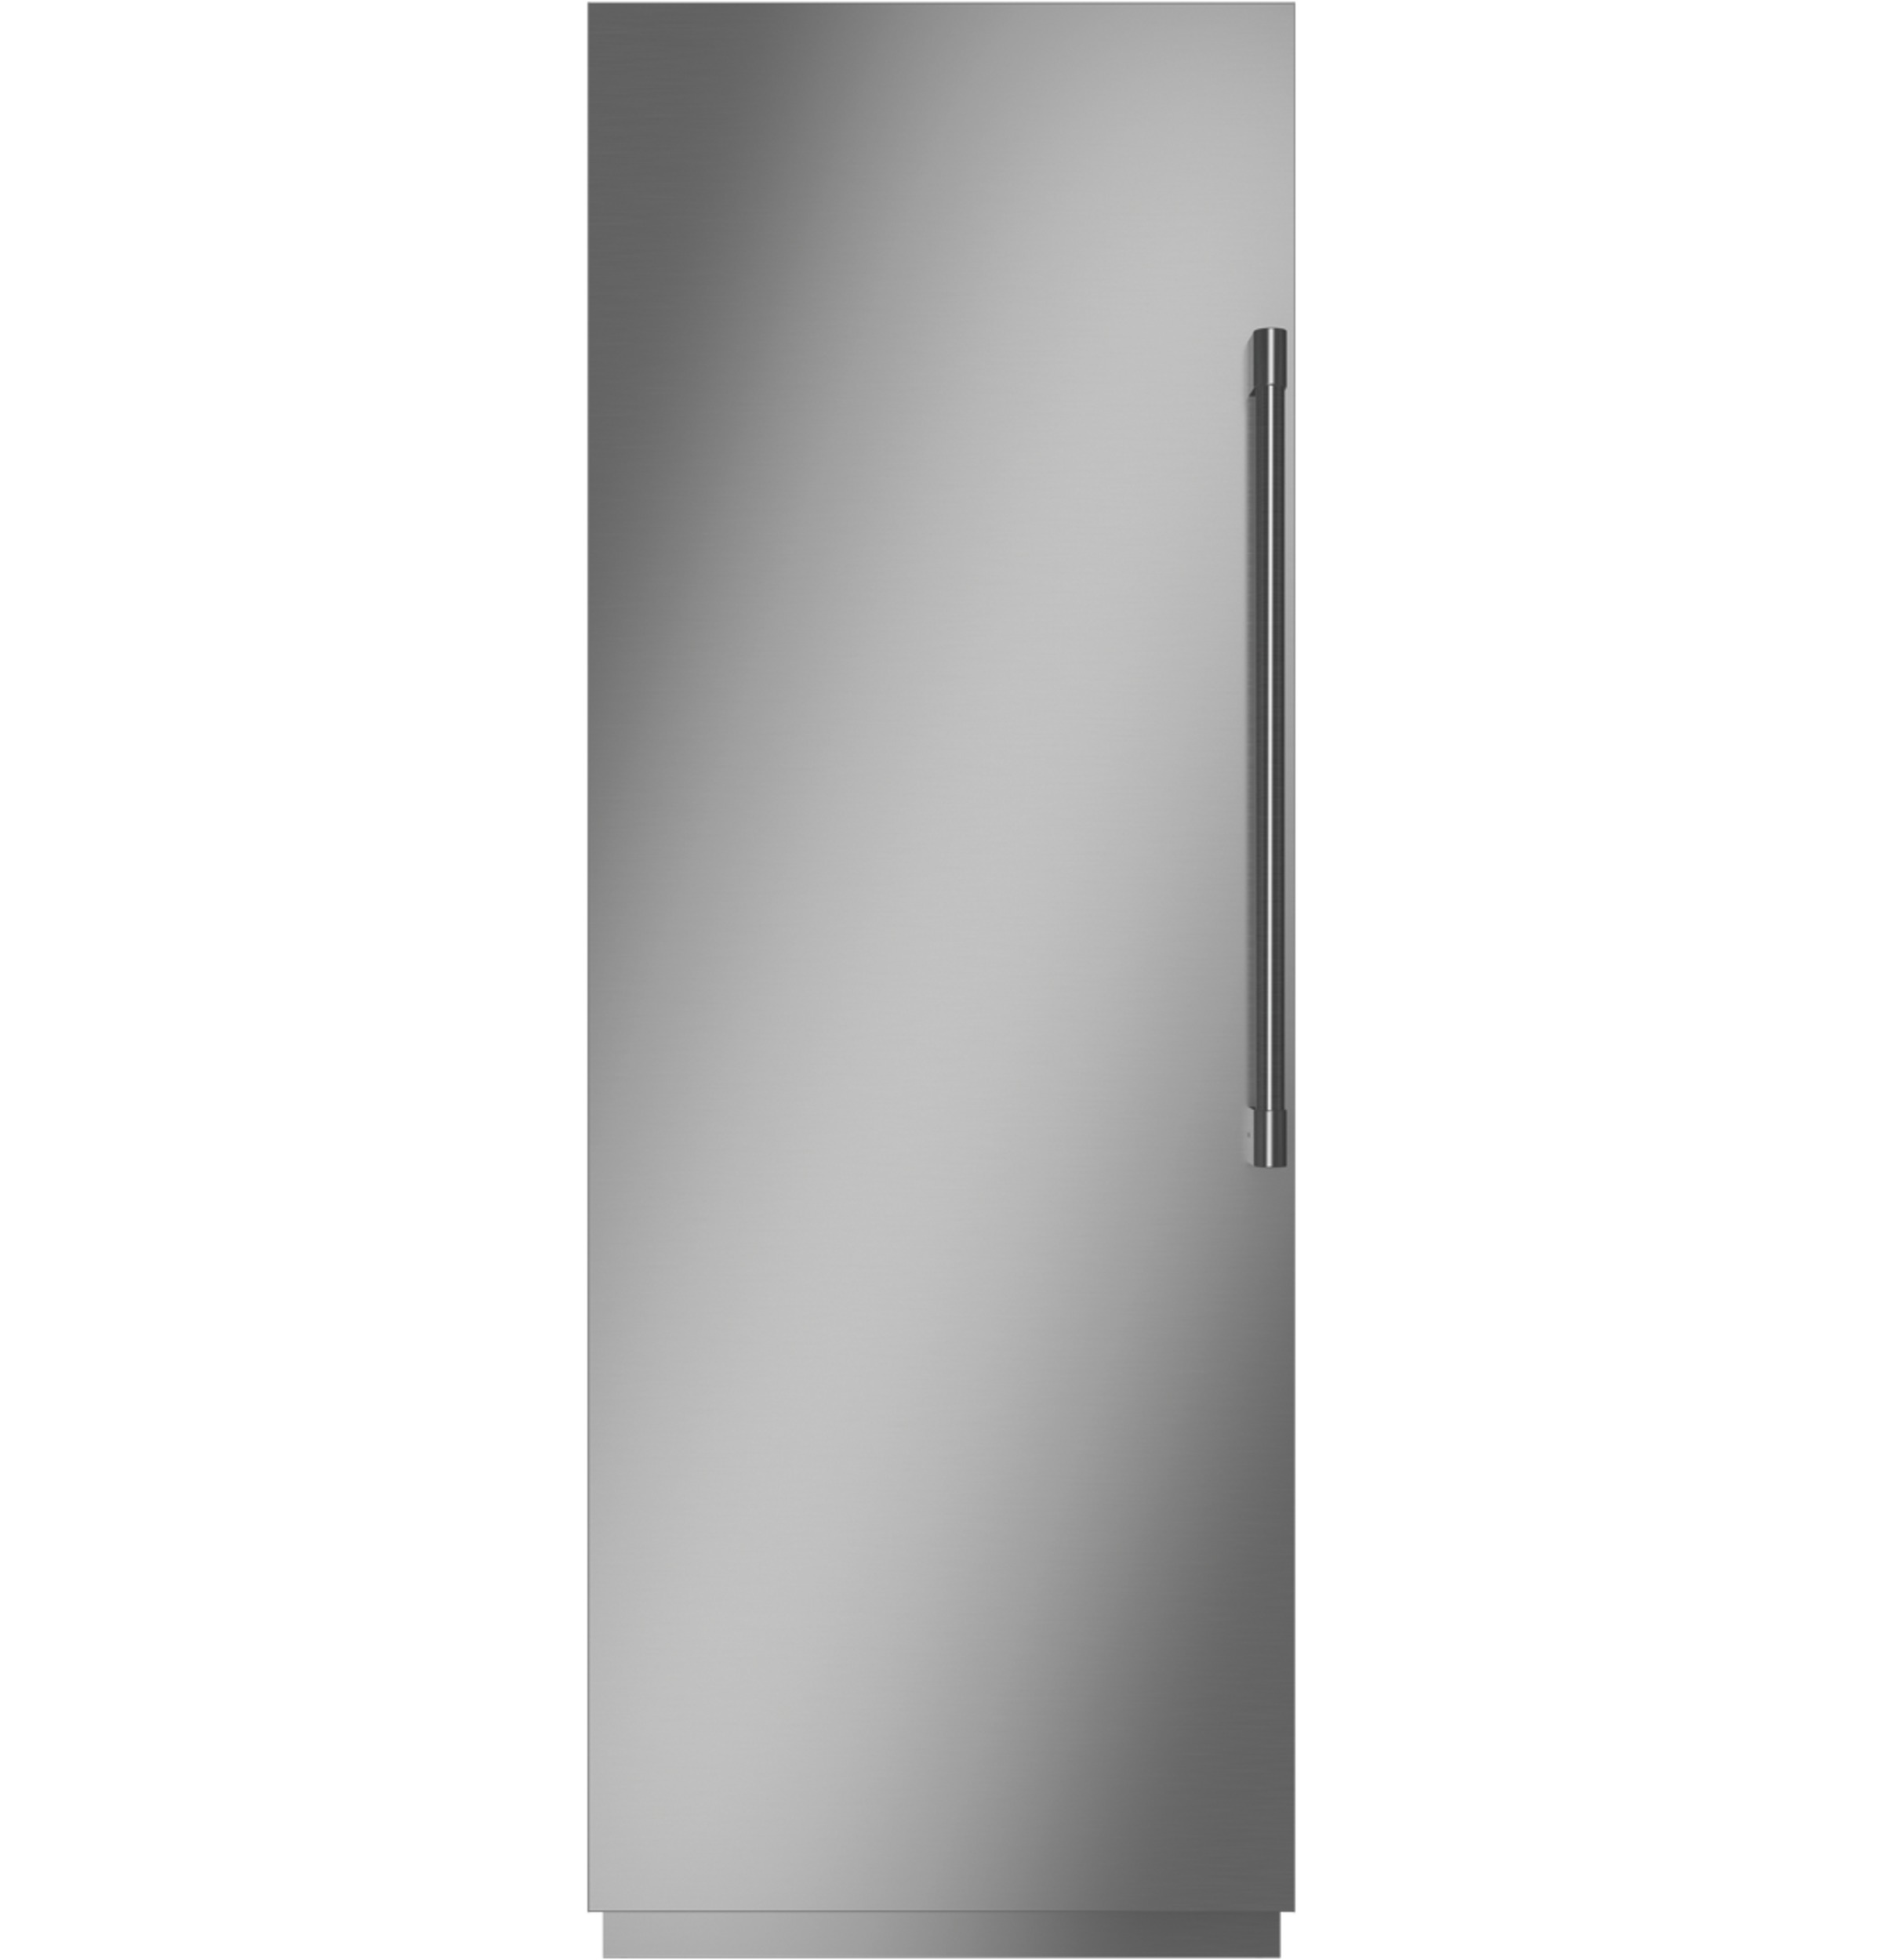 "Monogram Monogram 30"" Smart Integrated Column Freezer"